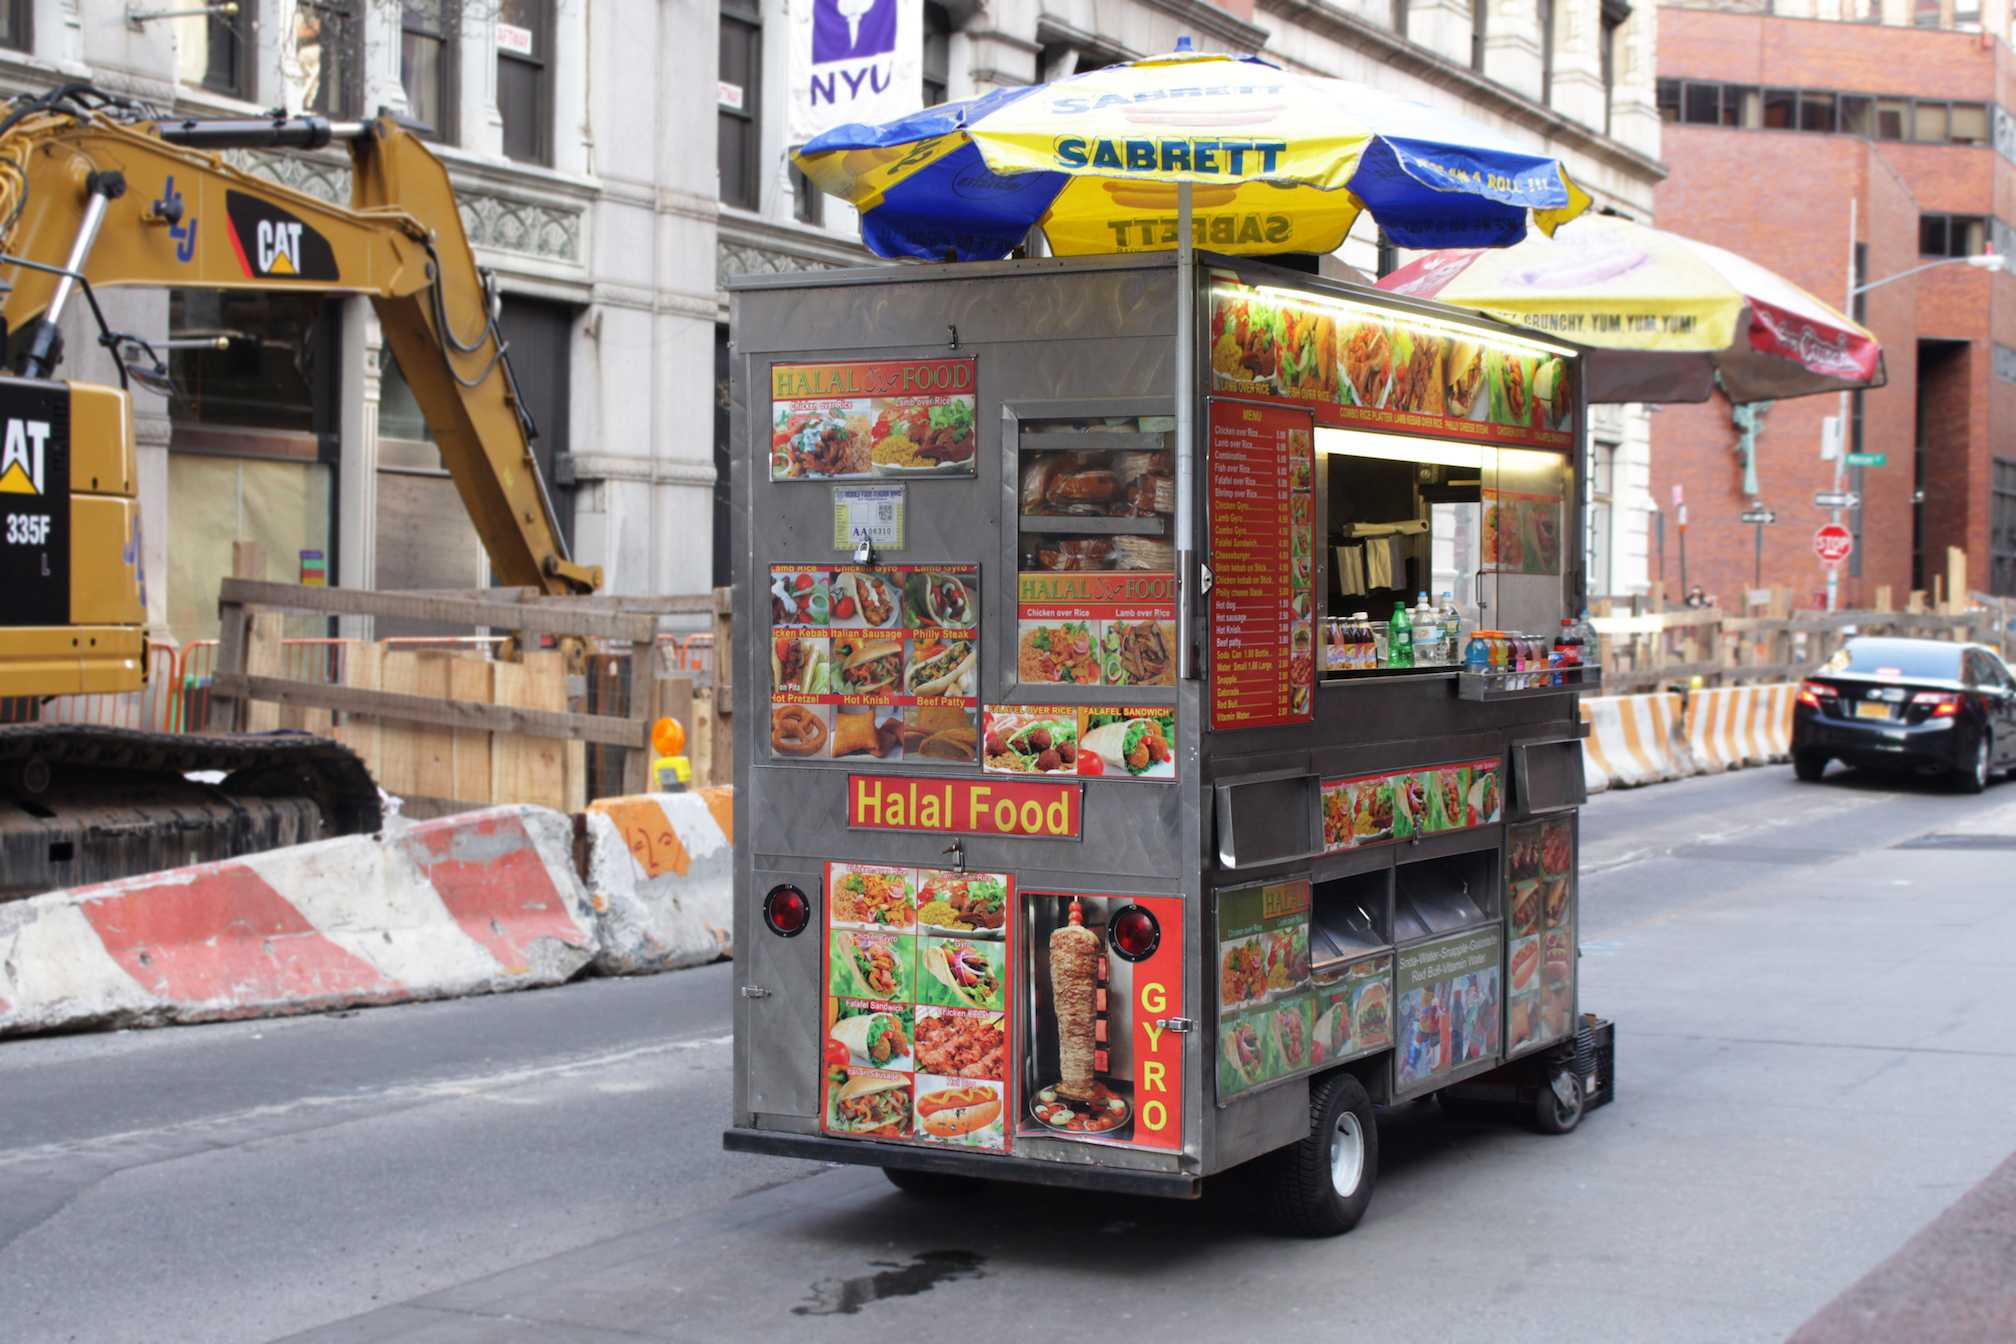 Halal food carts are available at almost every corner of busy streets in Manhattan. Such authentic street foods, among troll foods and unhealthy bowls, are predicted to trend in 2017.